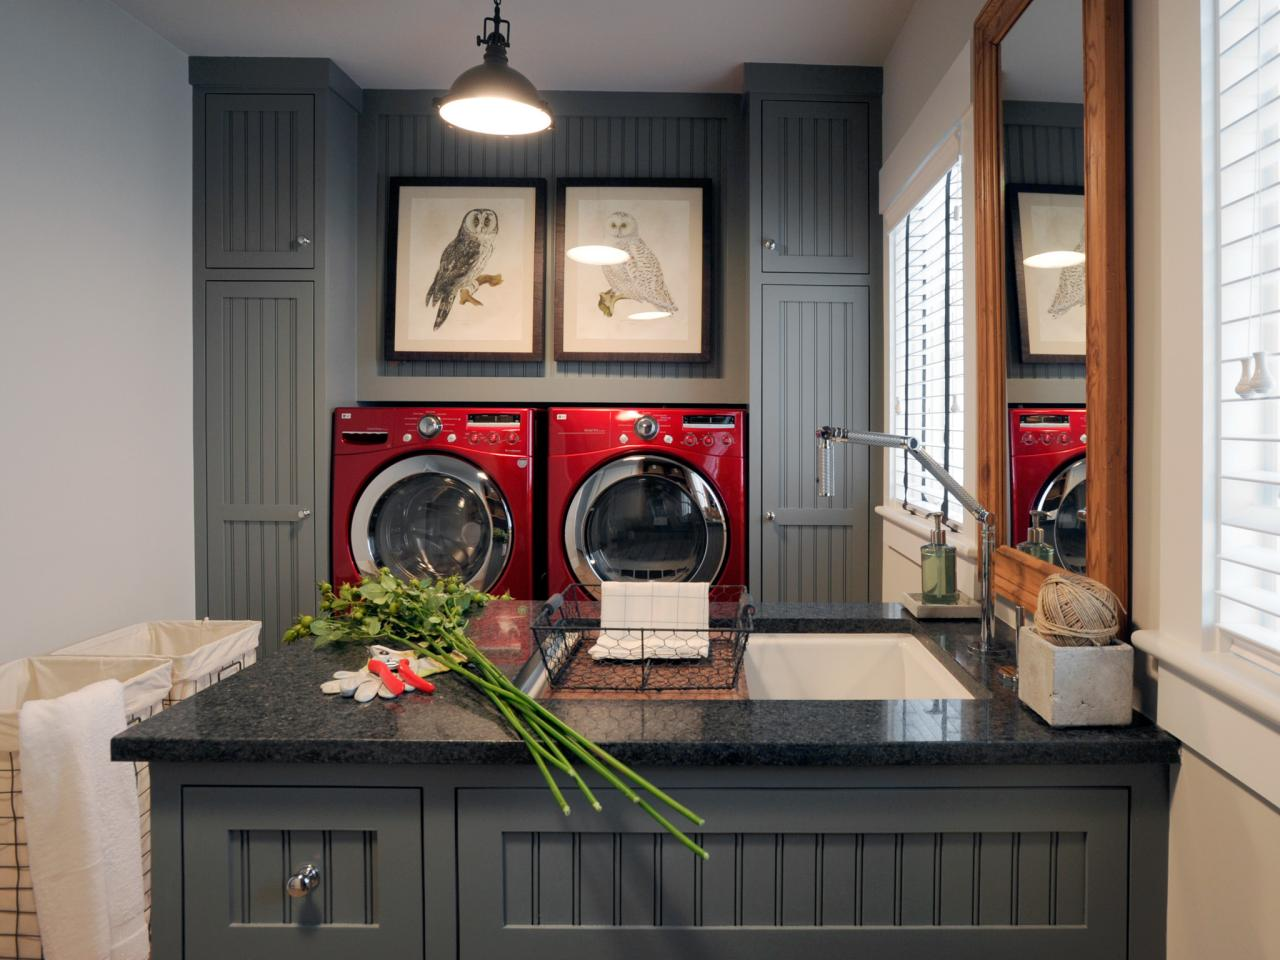 Laundry room layouts pictures options tips ideas hgtv - Laundry room design ideas ...